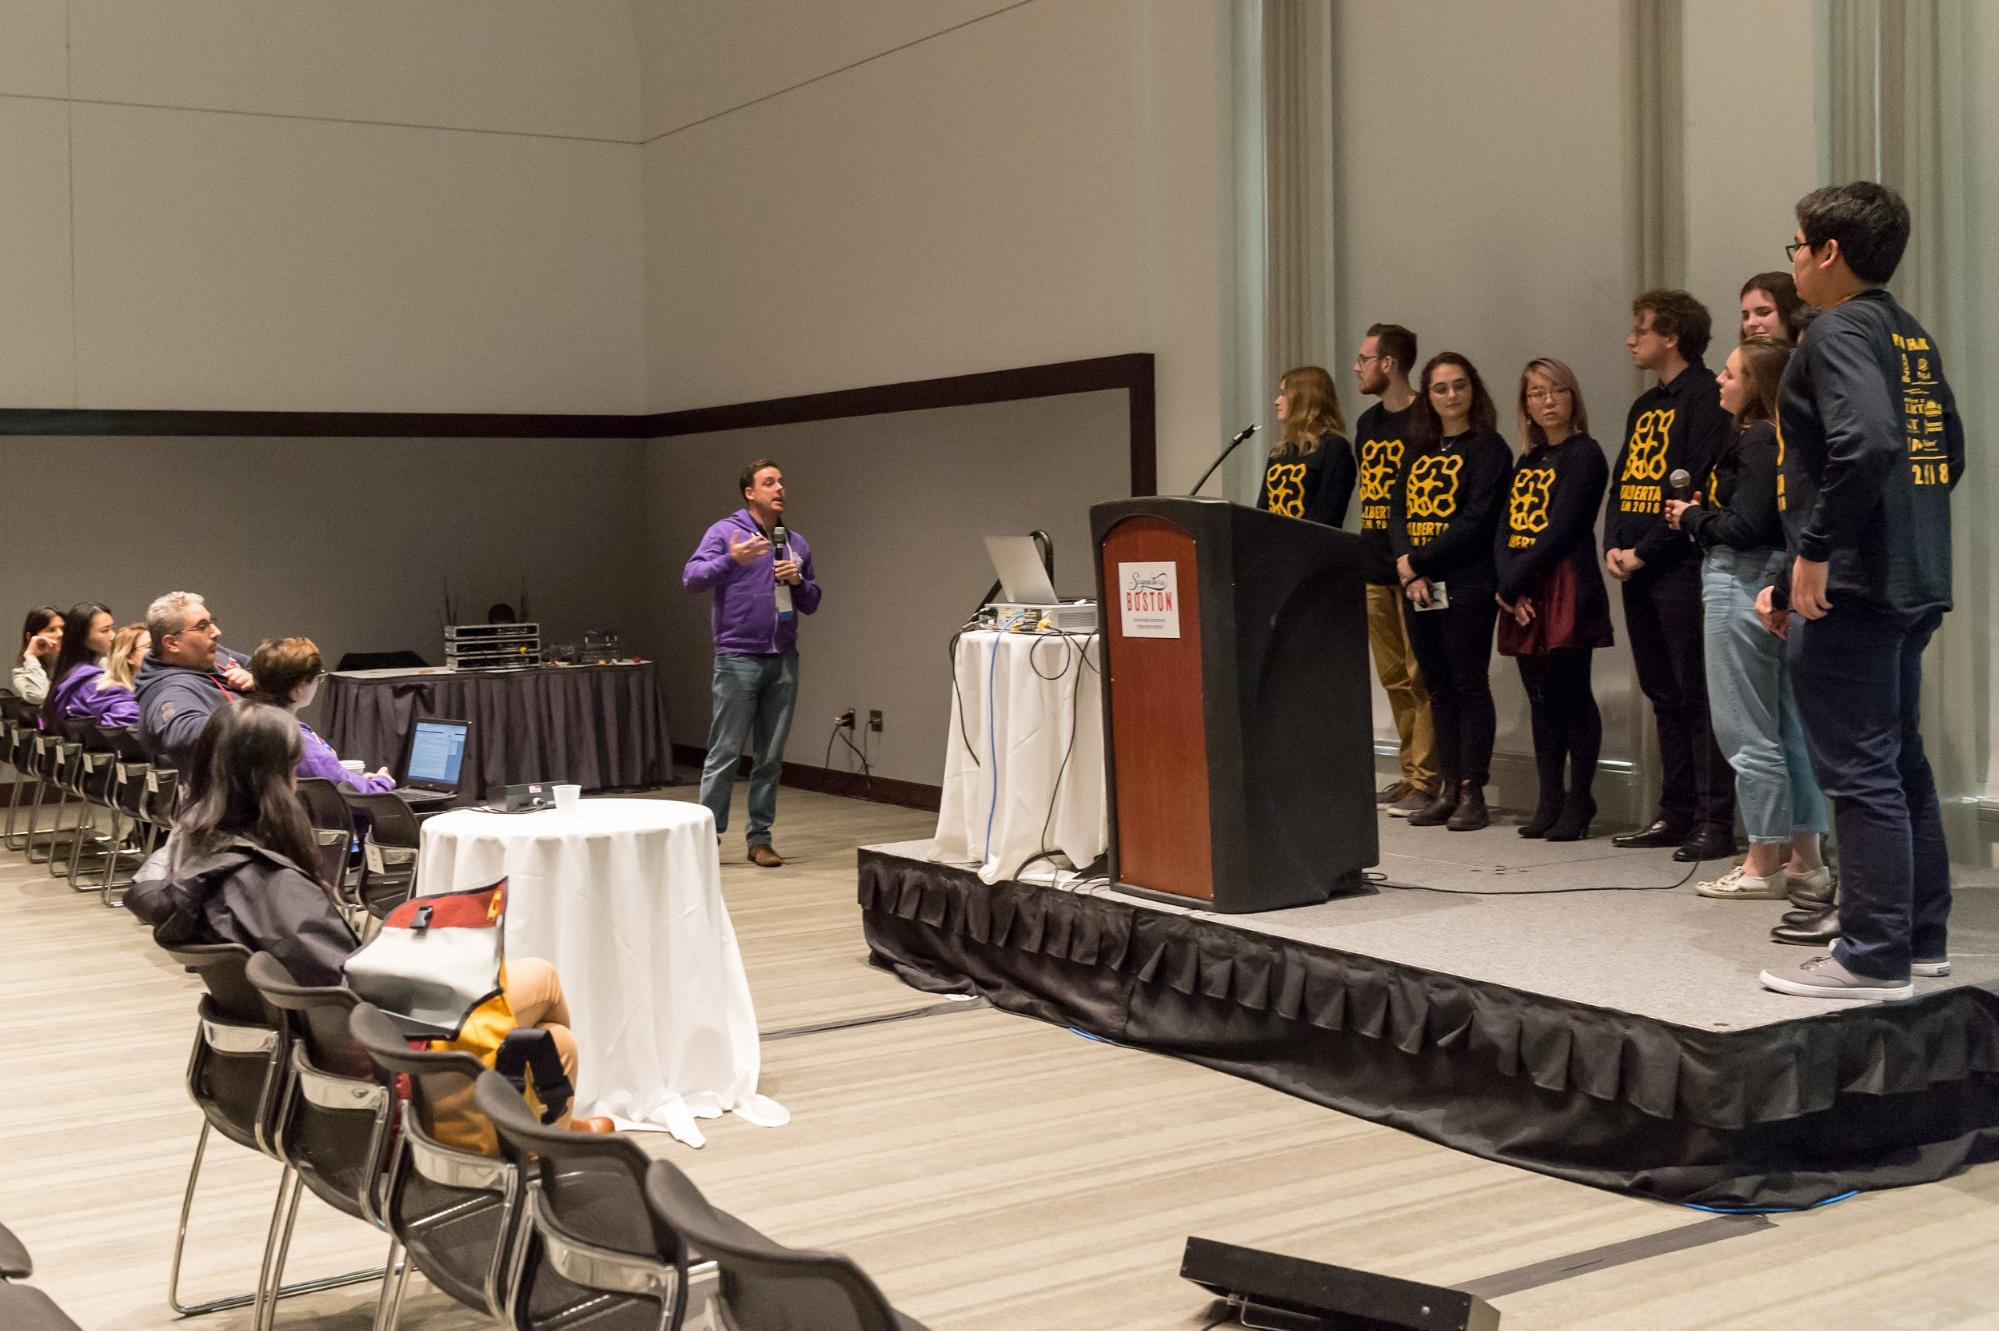 University of Alberta's iGEM team nervously listening to a judge's question. Photo: iGEM Foundation, Justin Knight